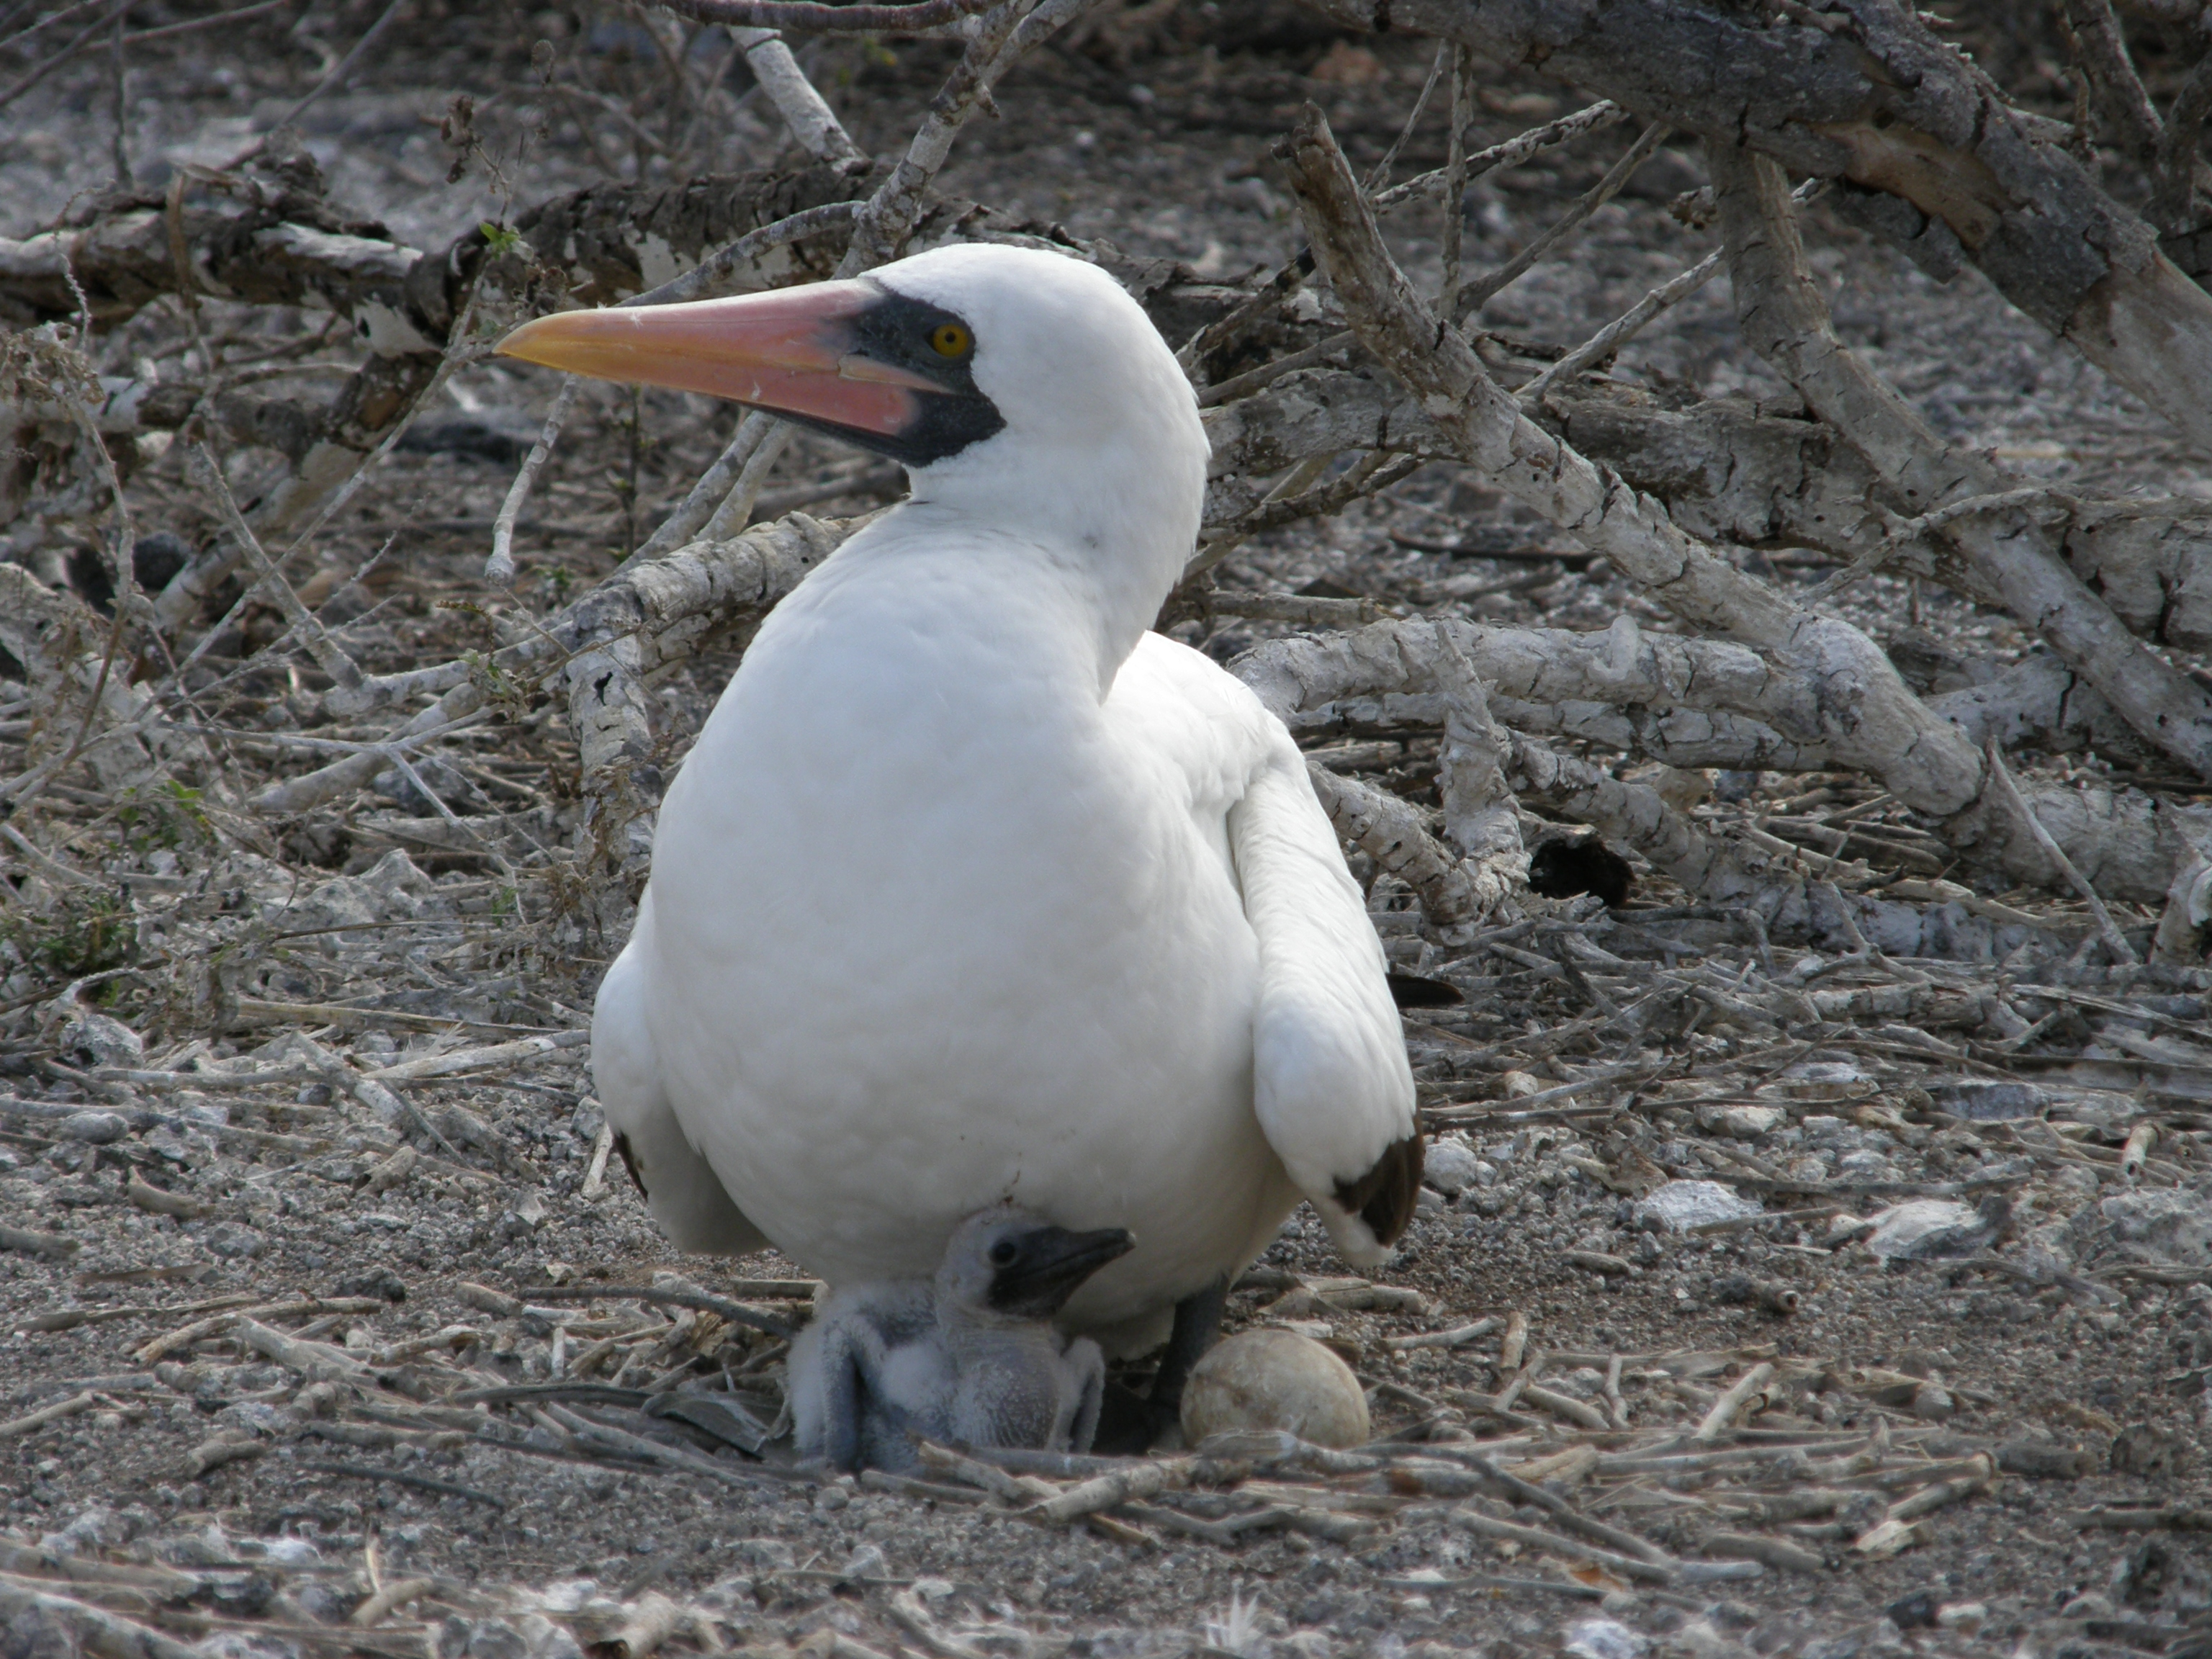 Adult Nazca booby with chick and unhatched egg